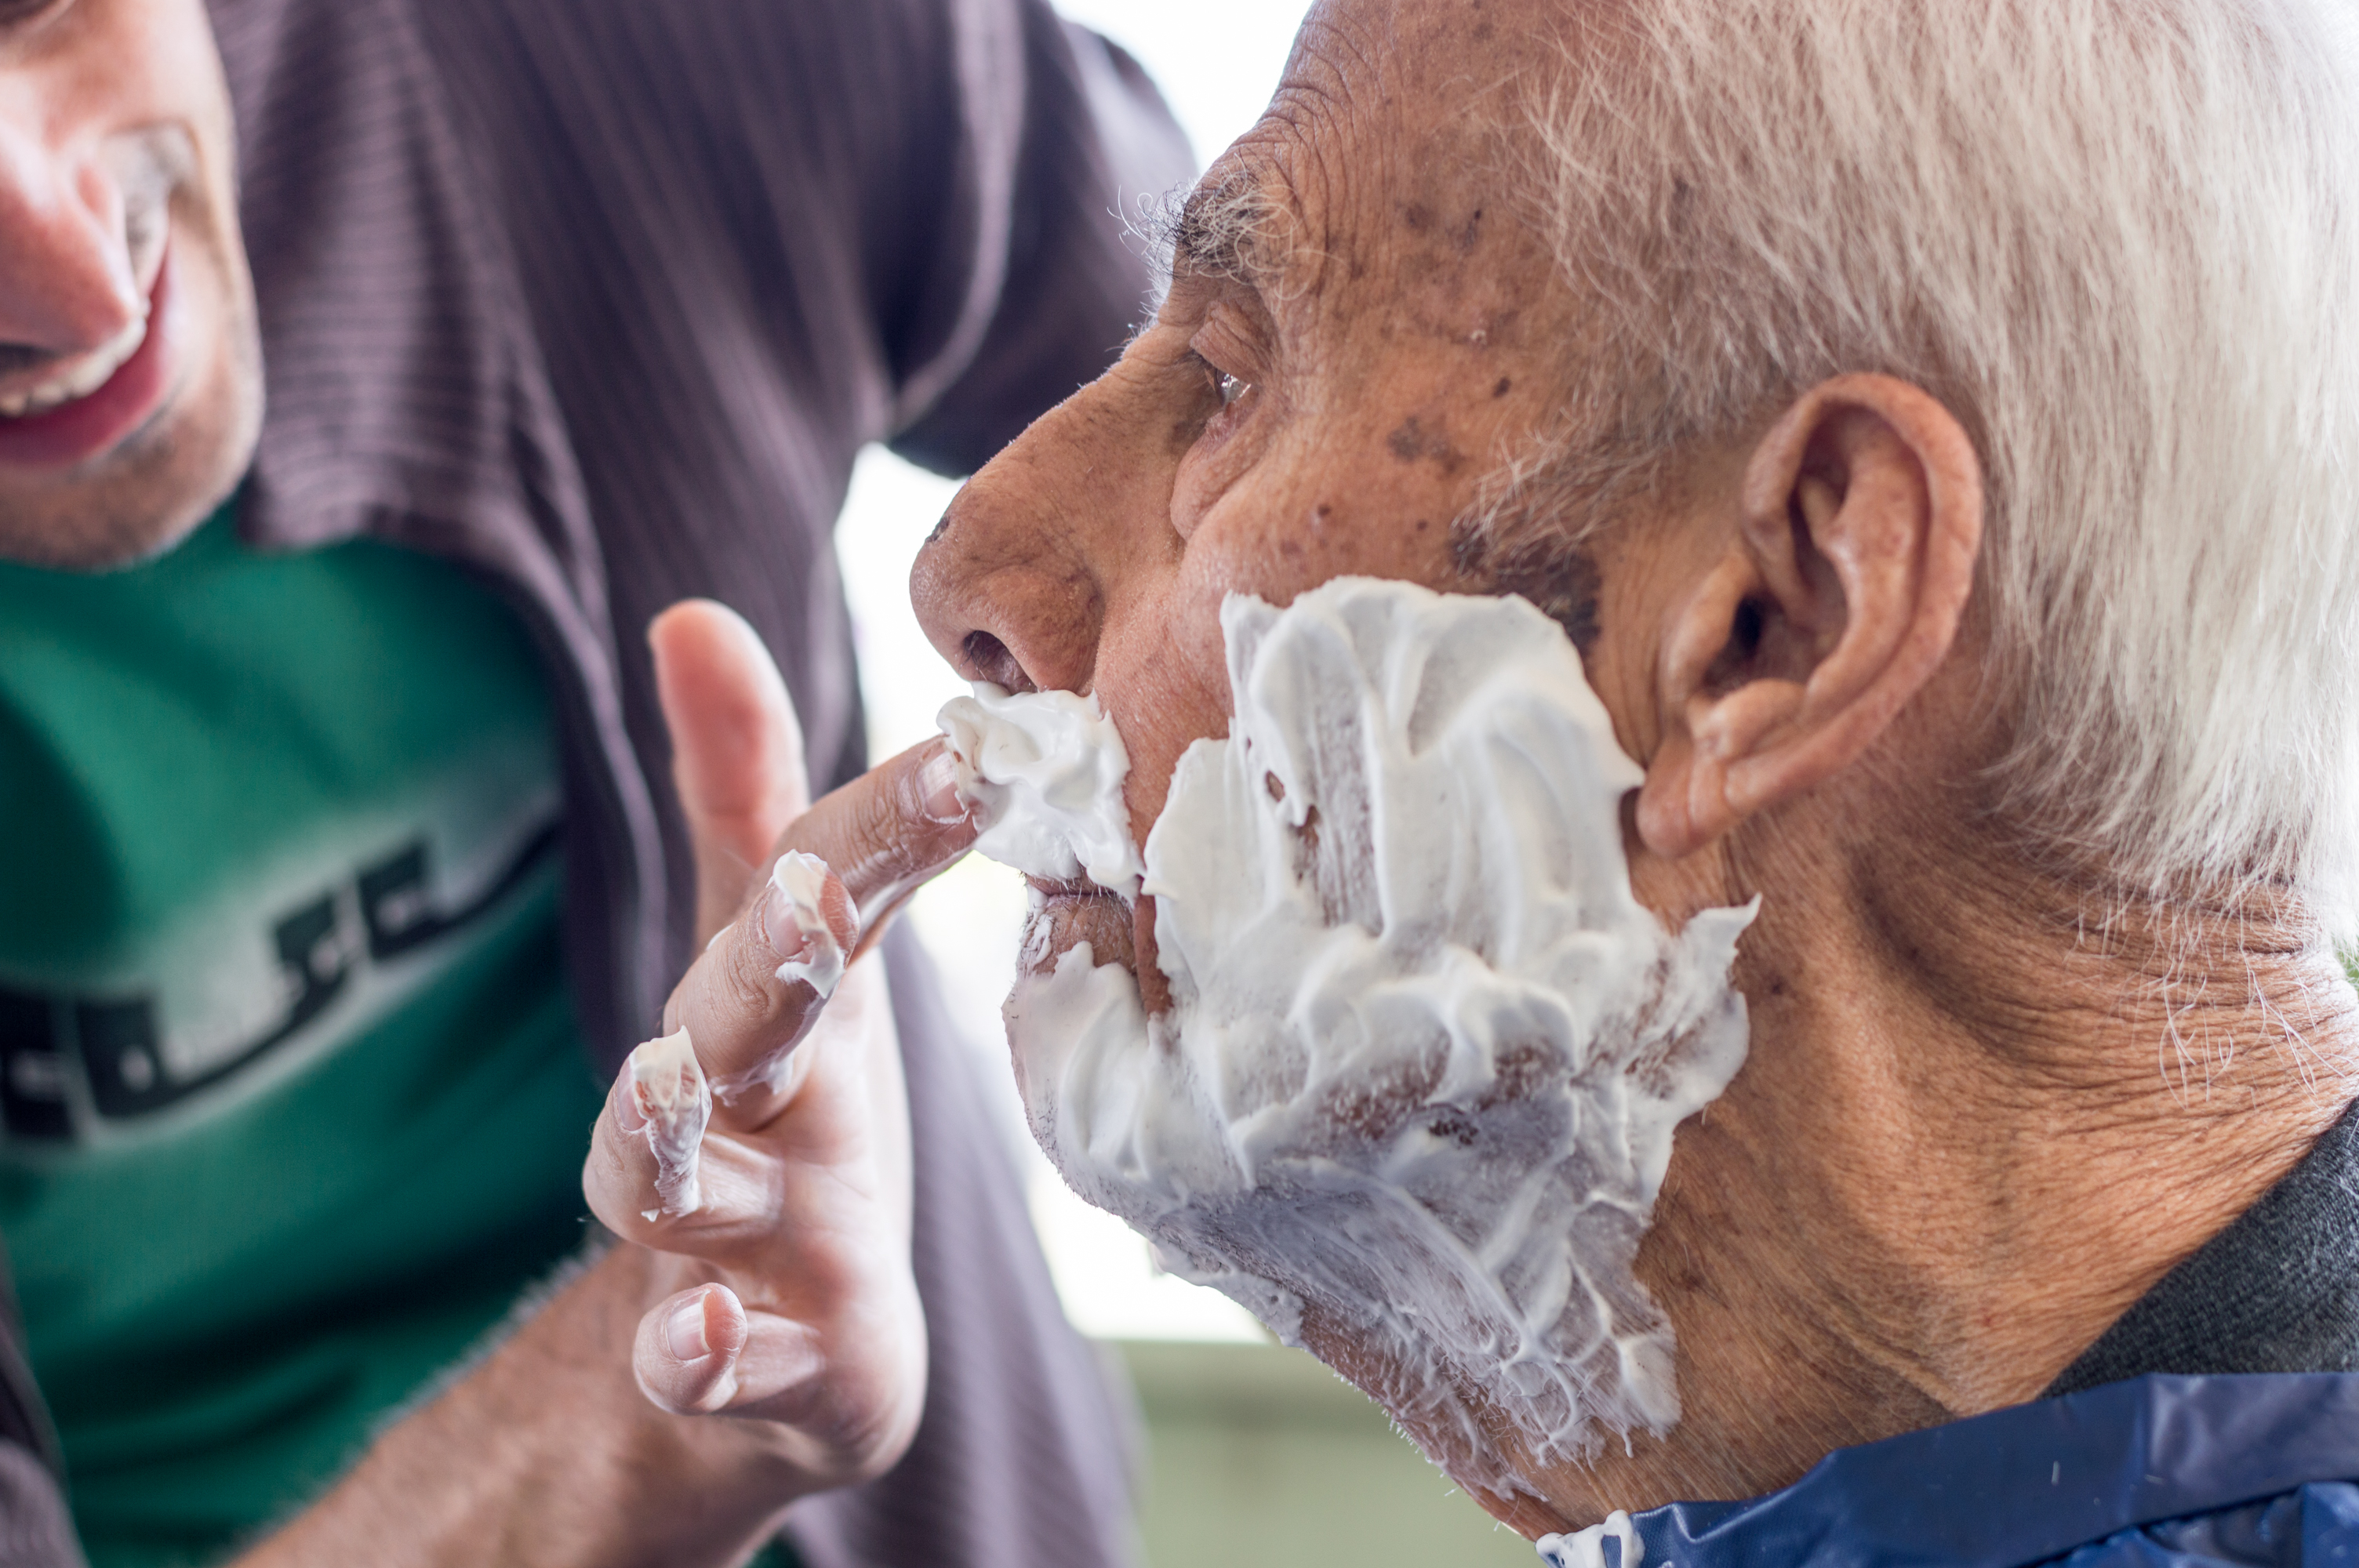 Elderly man getting his beard shaved by